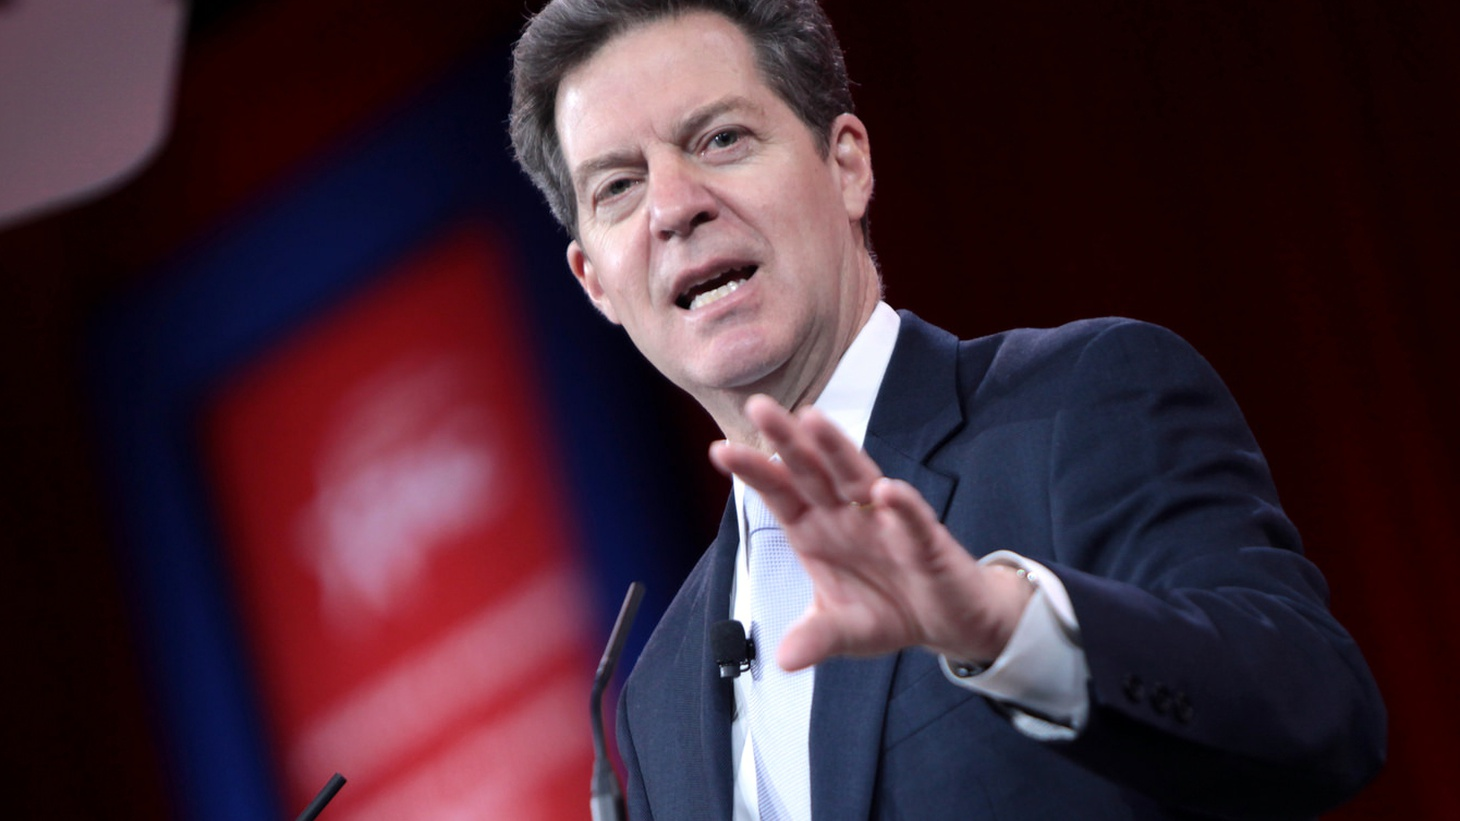 Kansas Governor Sam Brownback has implemented a long-term Republican call for action by cutting taxes and reducing services. Instead of boosting the economy, as is often predicted, that's produced a $75 million state deficit. This week, primary voters had their say.